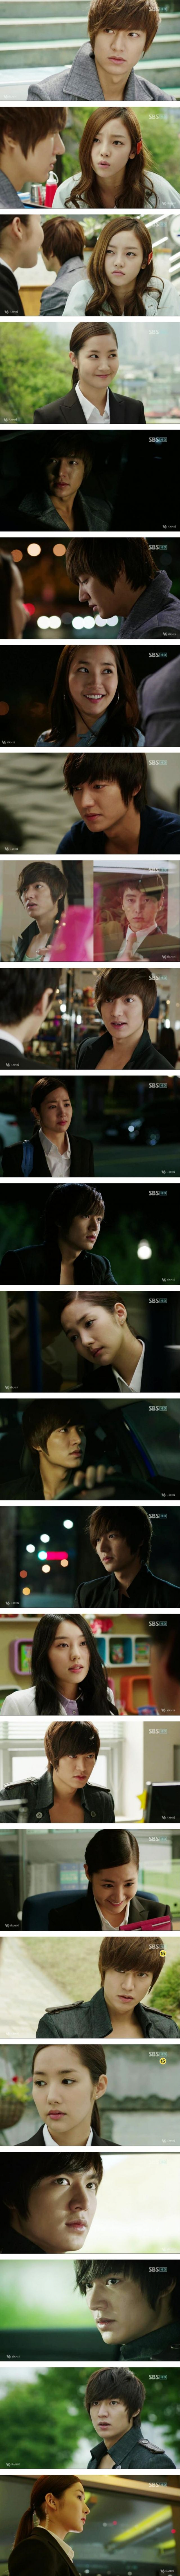 Added episode 4 captures for the Korean drama